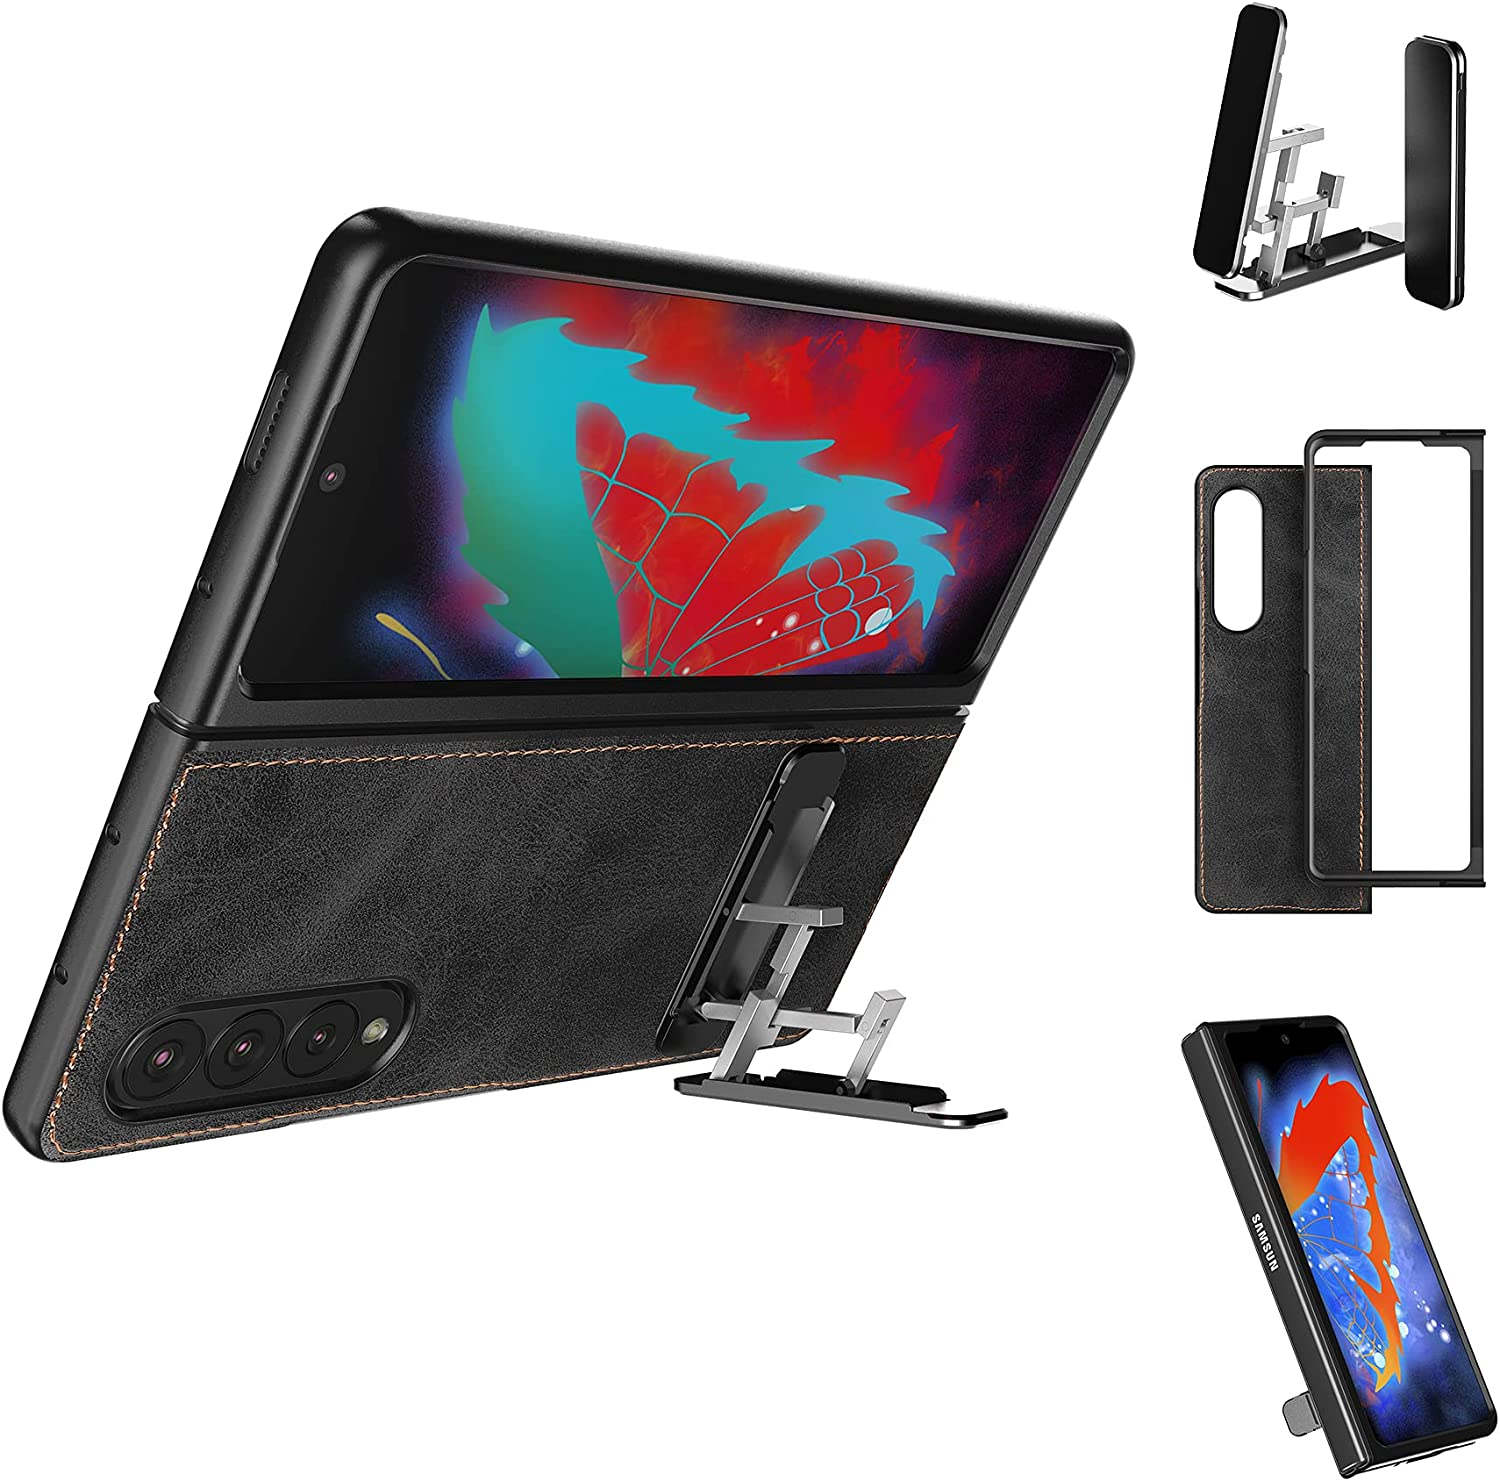 Cresee Case for Samsung Galaxy Z Fold 3 5G + Kickstand, PU Leather Back Cover & Hard PC Front Bumper Protective Shell Thin Fit Phone Case Stand for Galaxy Z Fold3 2021 - Black